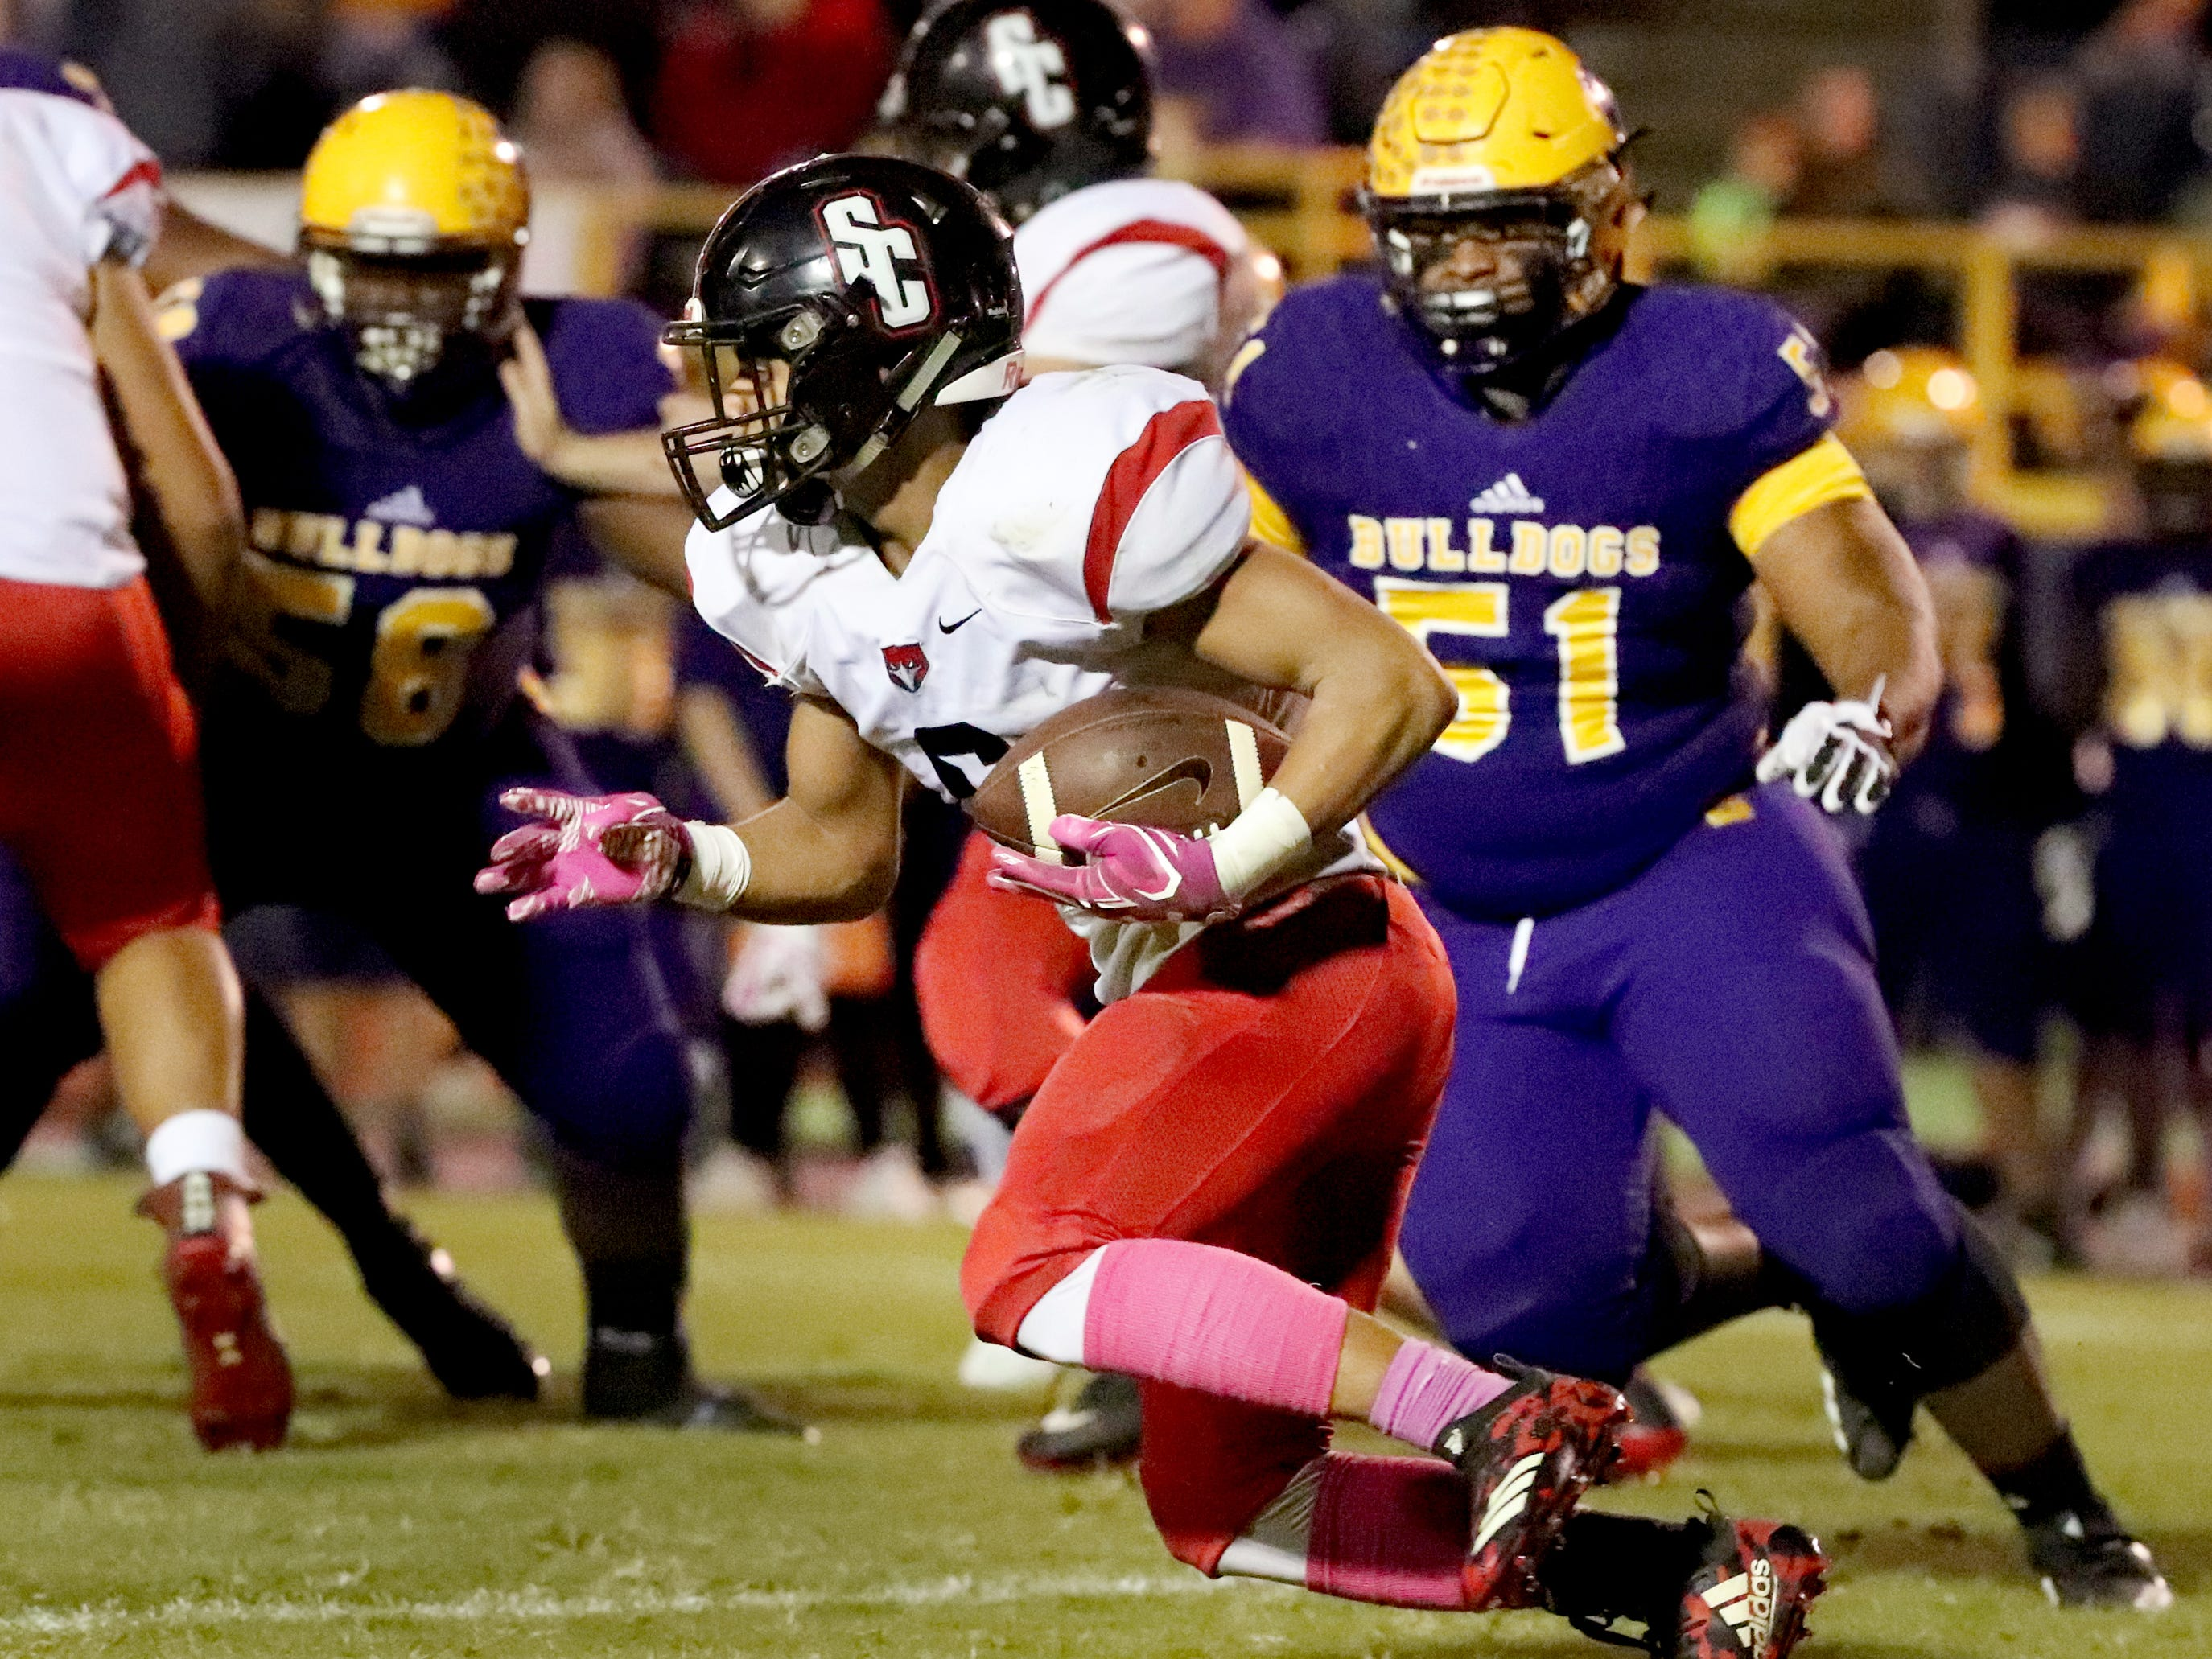 Stewarts Creek's Savion Davis (6) runs the ball as Smyrna's Marlon Alexander (51) moves in for a tackle at Smyrna High School on Friday, Oct. 12, 2018.